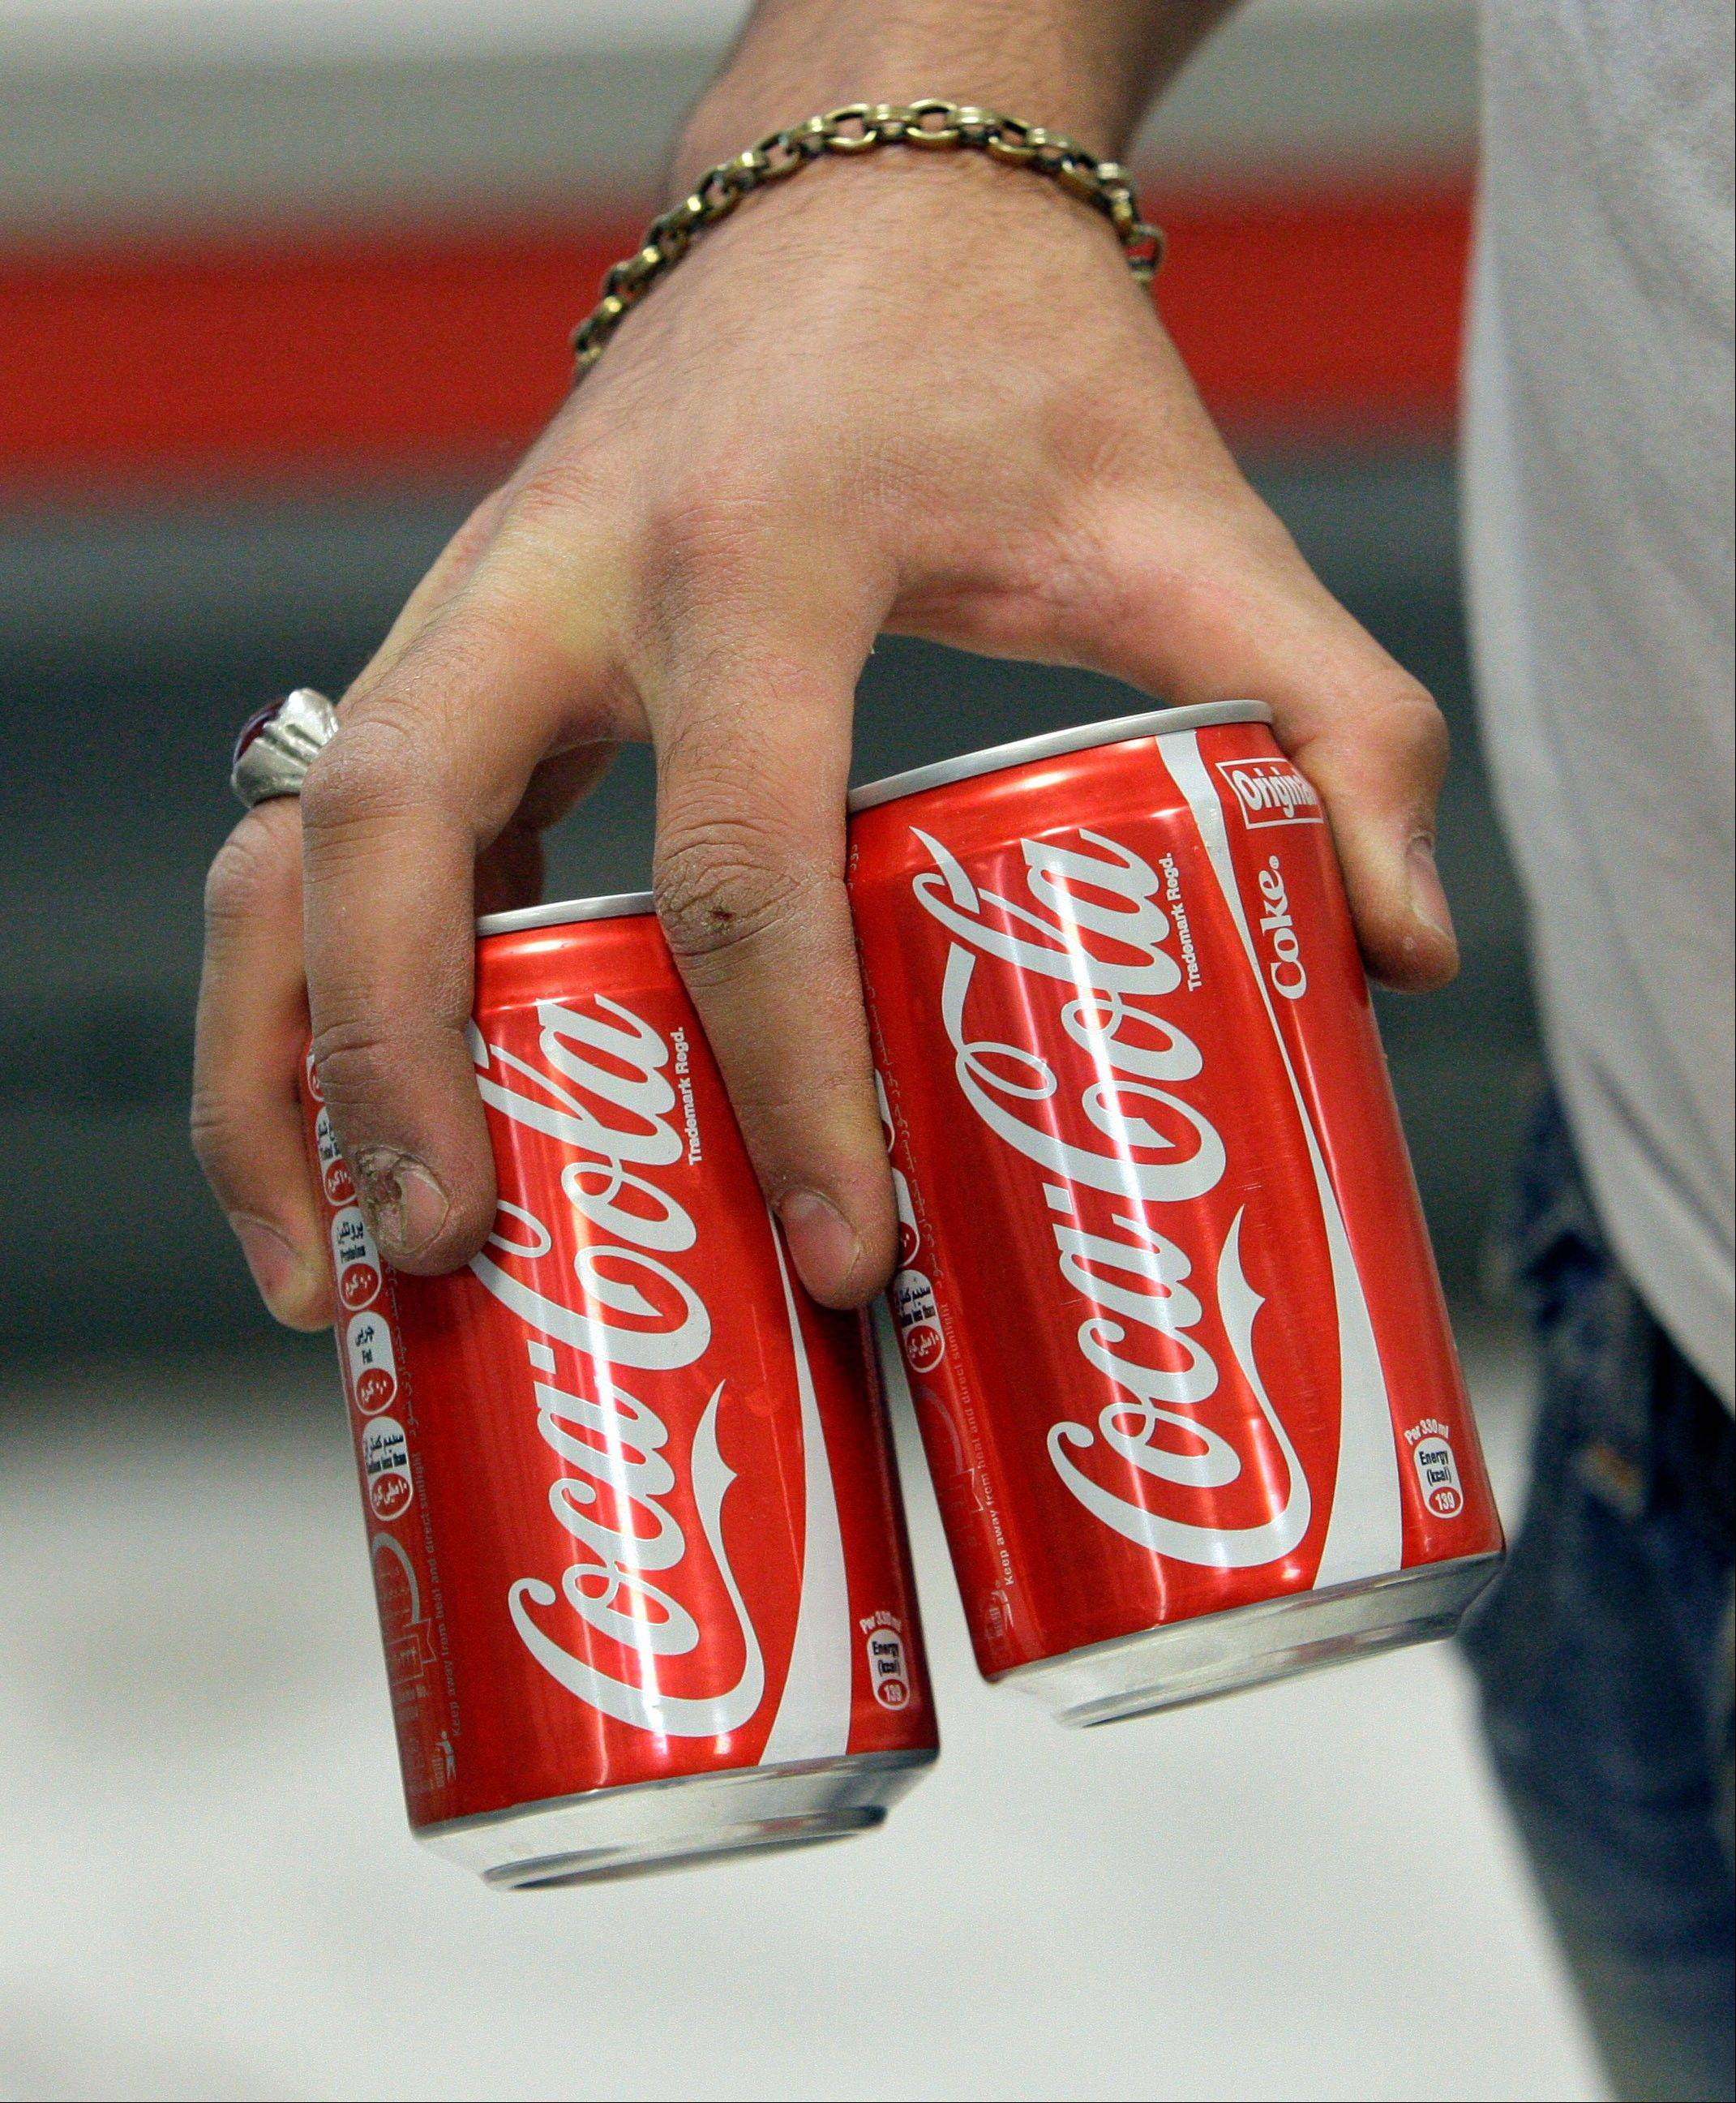 Associated Press/Sept. 8, 2012 Iranian worker Mahmoud Kouhi, carries cans of Coke, in a grocery store in northern Tehran.